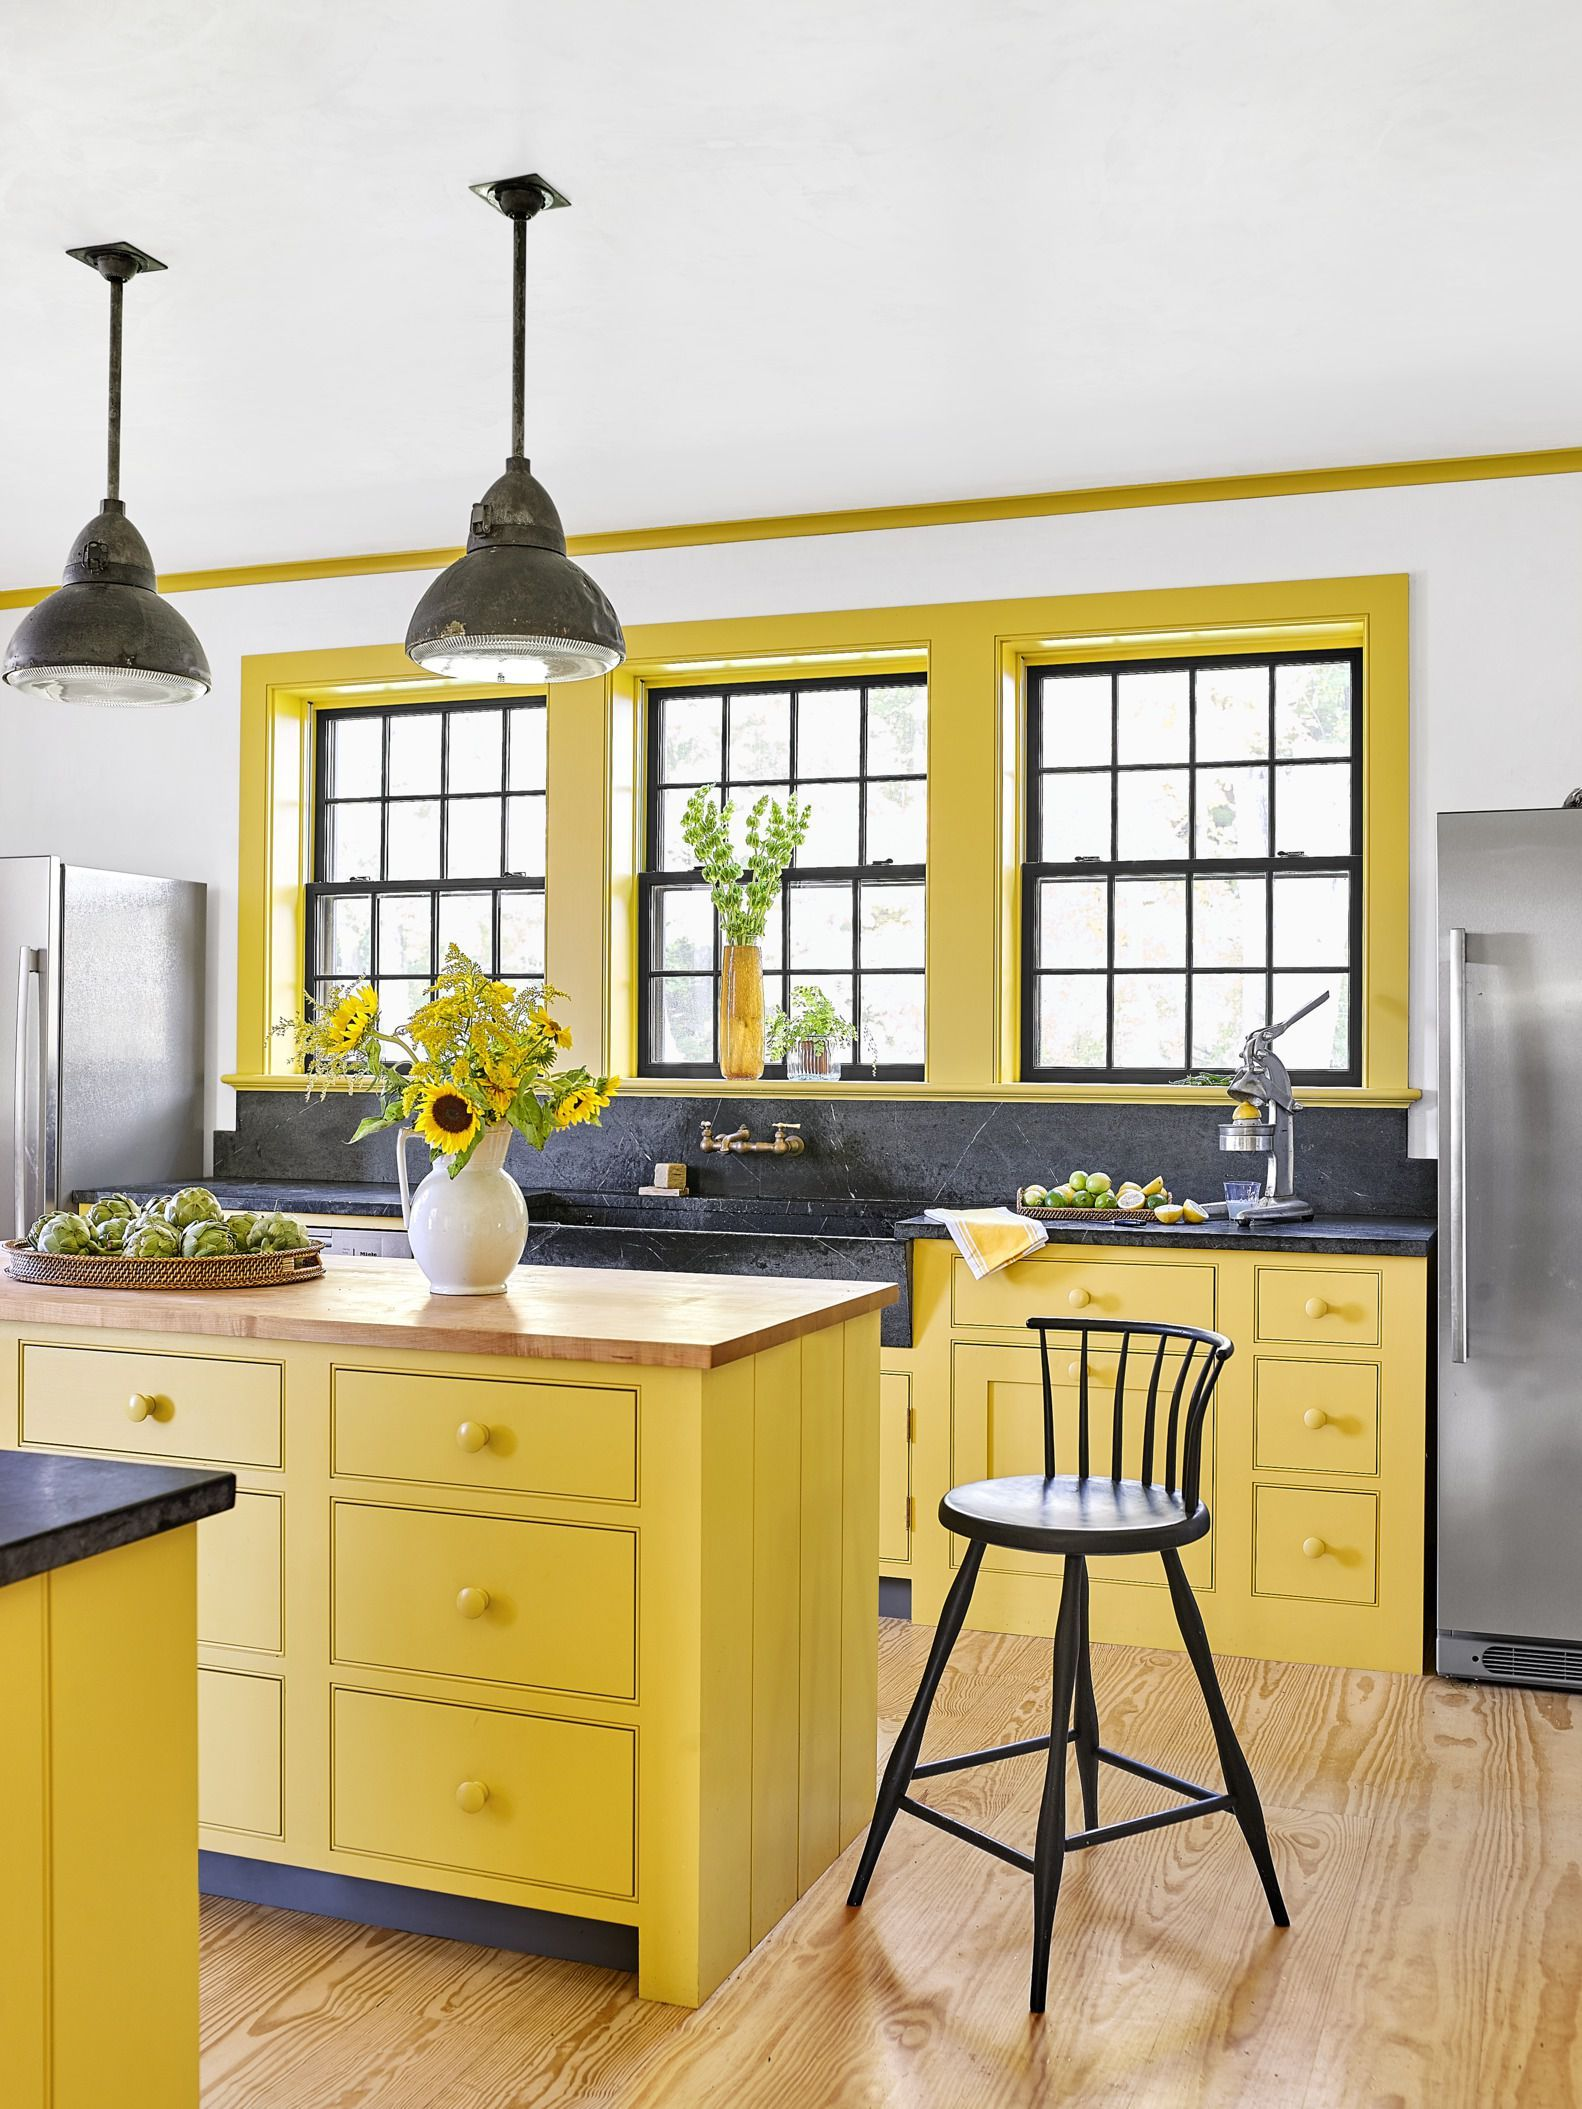 Refreshing Your Kitchen Cabinets Get Started With These Gorgeous Diy Hardware Ideas Farmhouse Style Kitchen Yellow Home Decor Kitchen Design